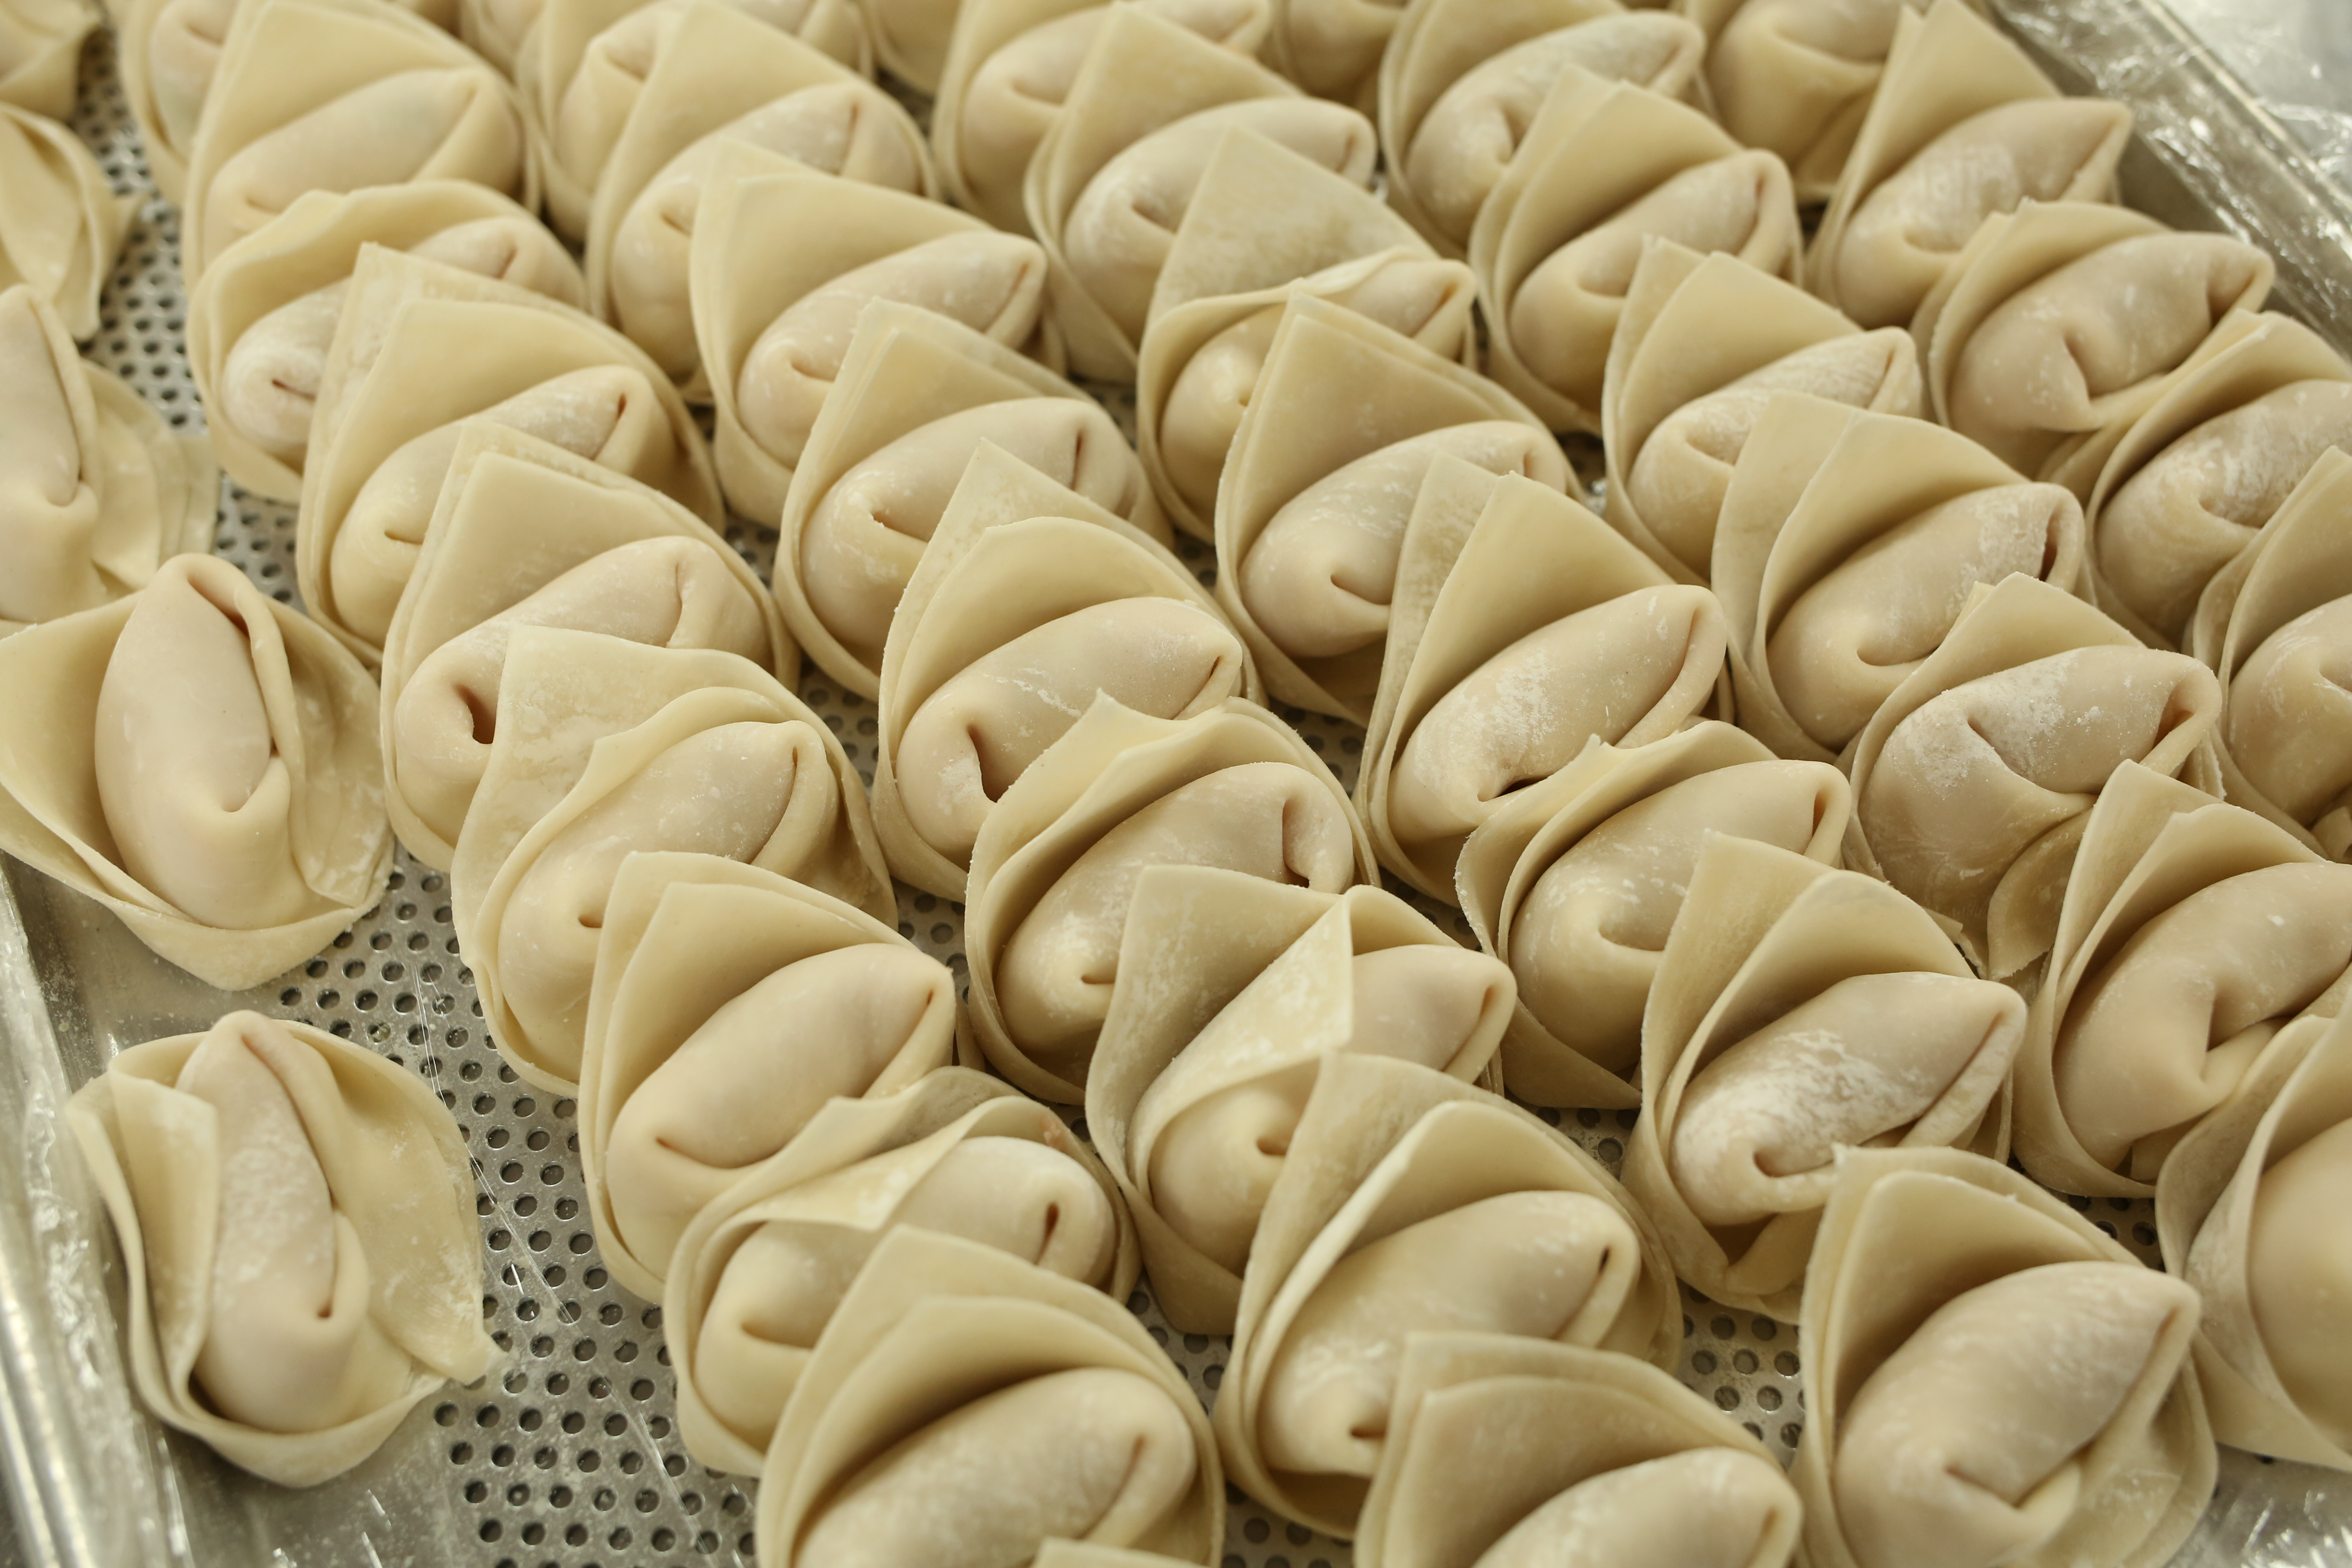 An overhead photograph of rows of uncooked dumplings folded in an envelope shape